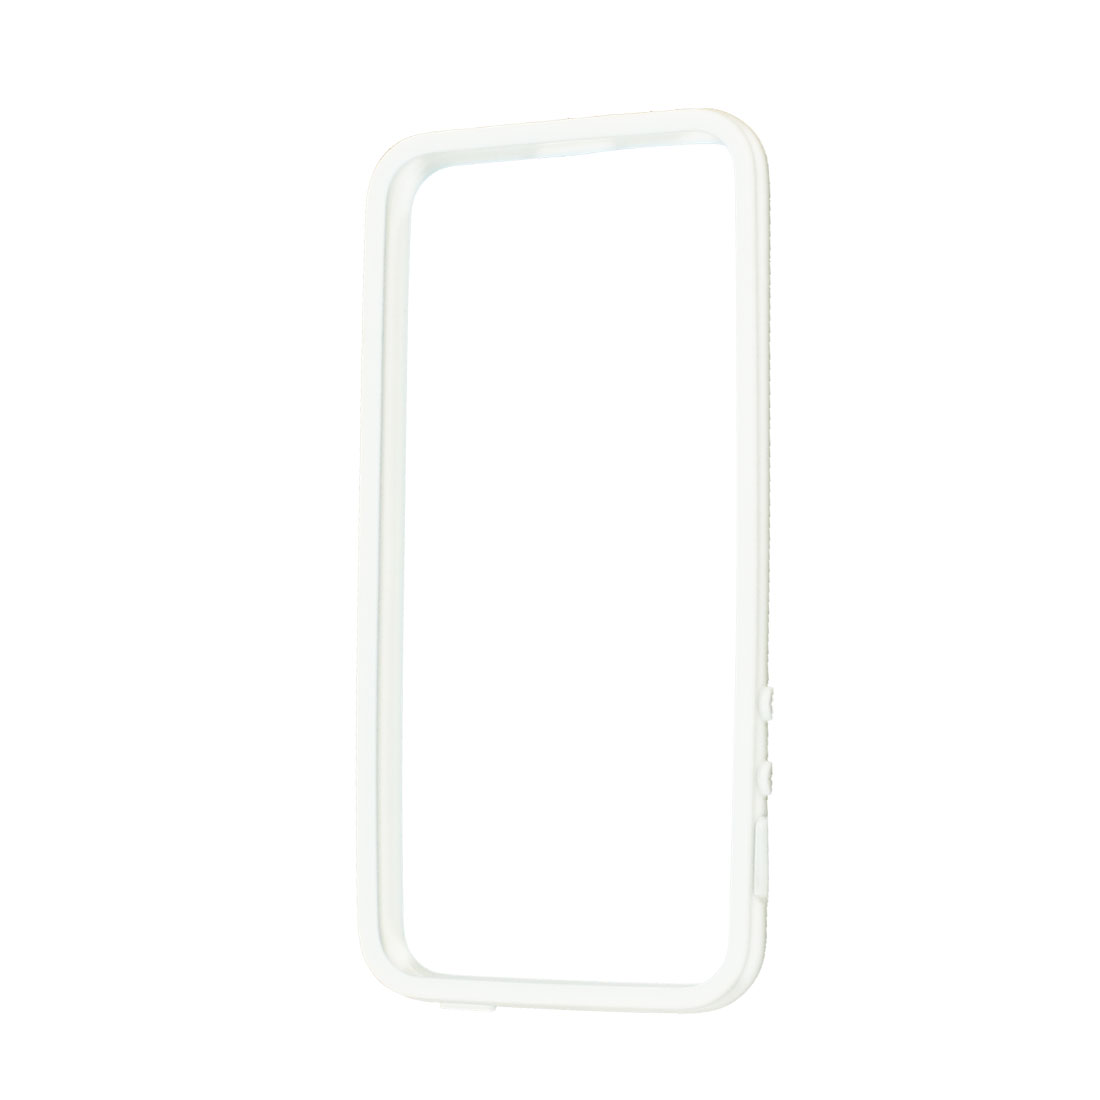 White Full Frame Soft Plastic Case Cover Shell Protector for iPhone 5 5G